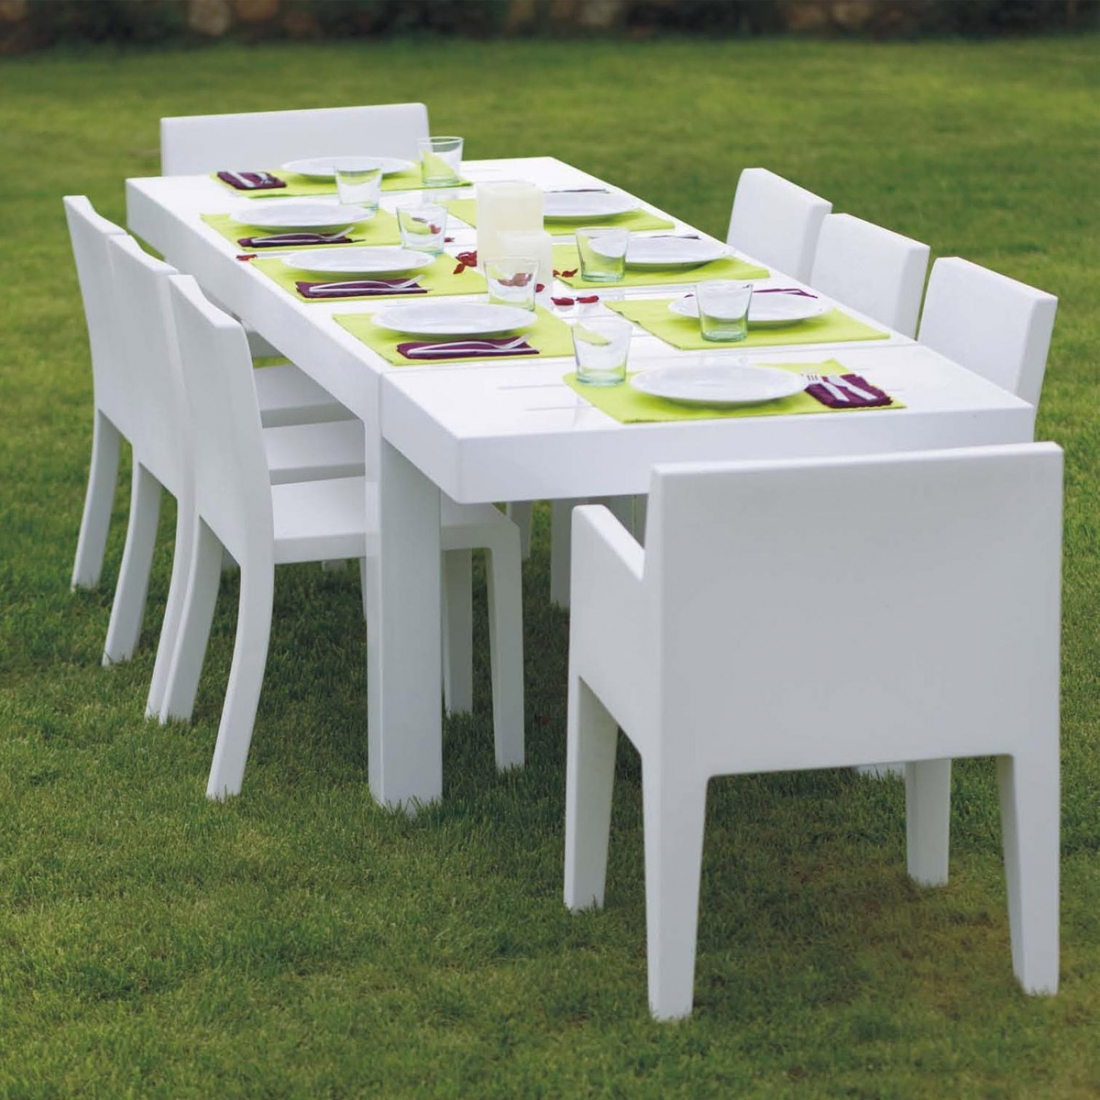 Table de jardin design 10 personnes jut par vondom for Design exterieur